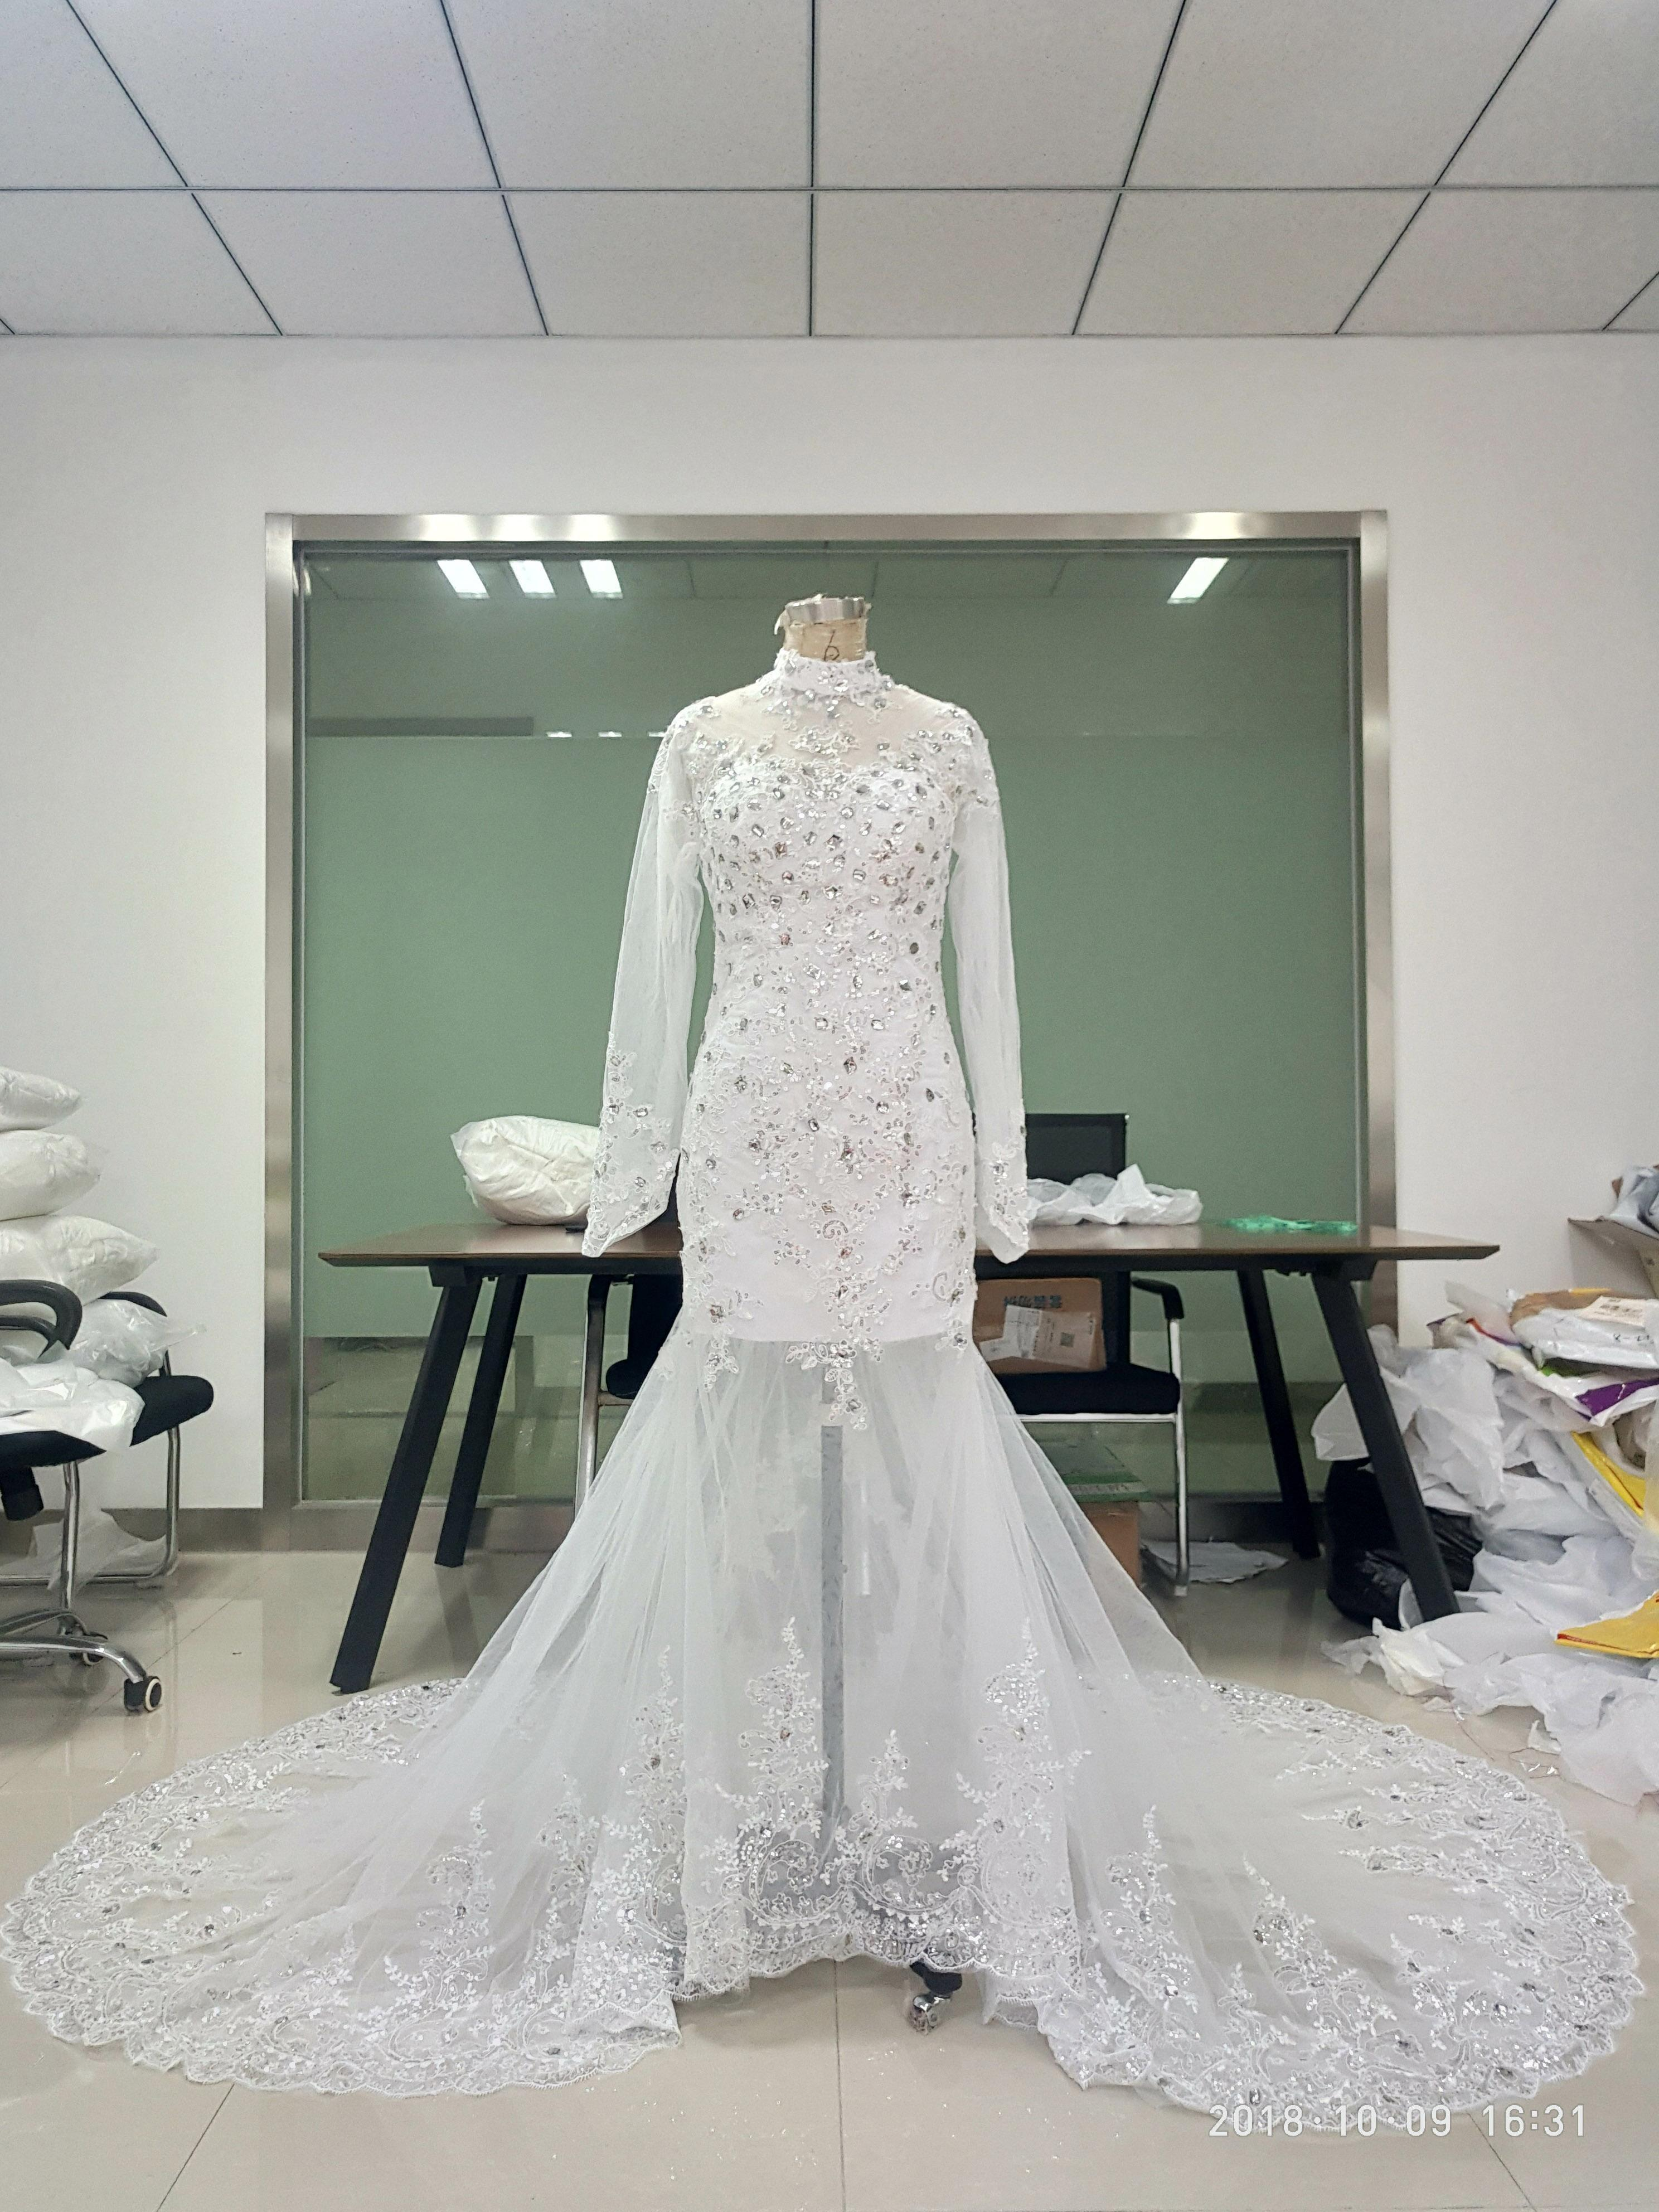 In Stock High Neck Wedding Dresses with Illusion Long Sleeve Mermaid Crystal Bead Lace Appliques Tulle Bridal Gown with See Through Back